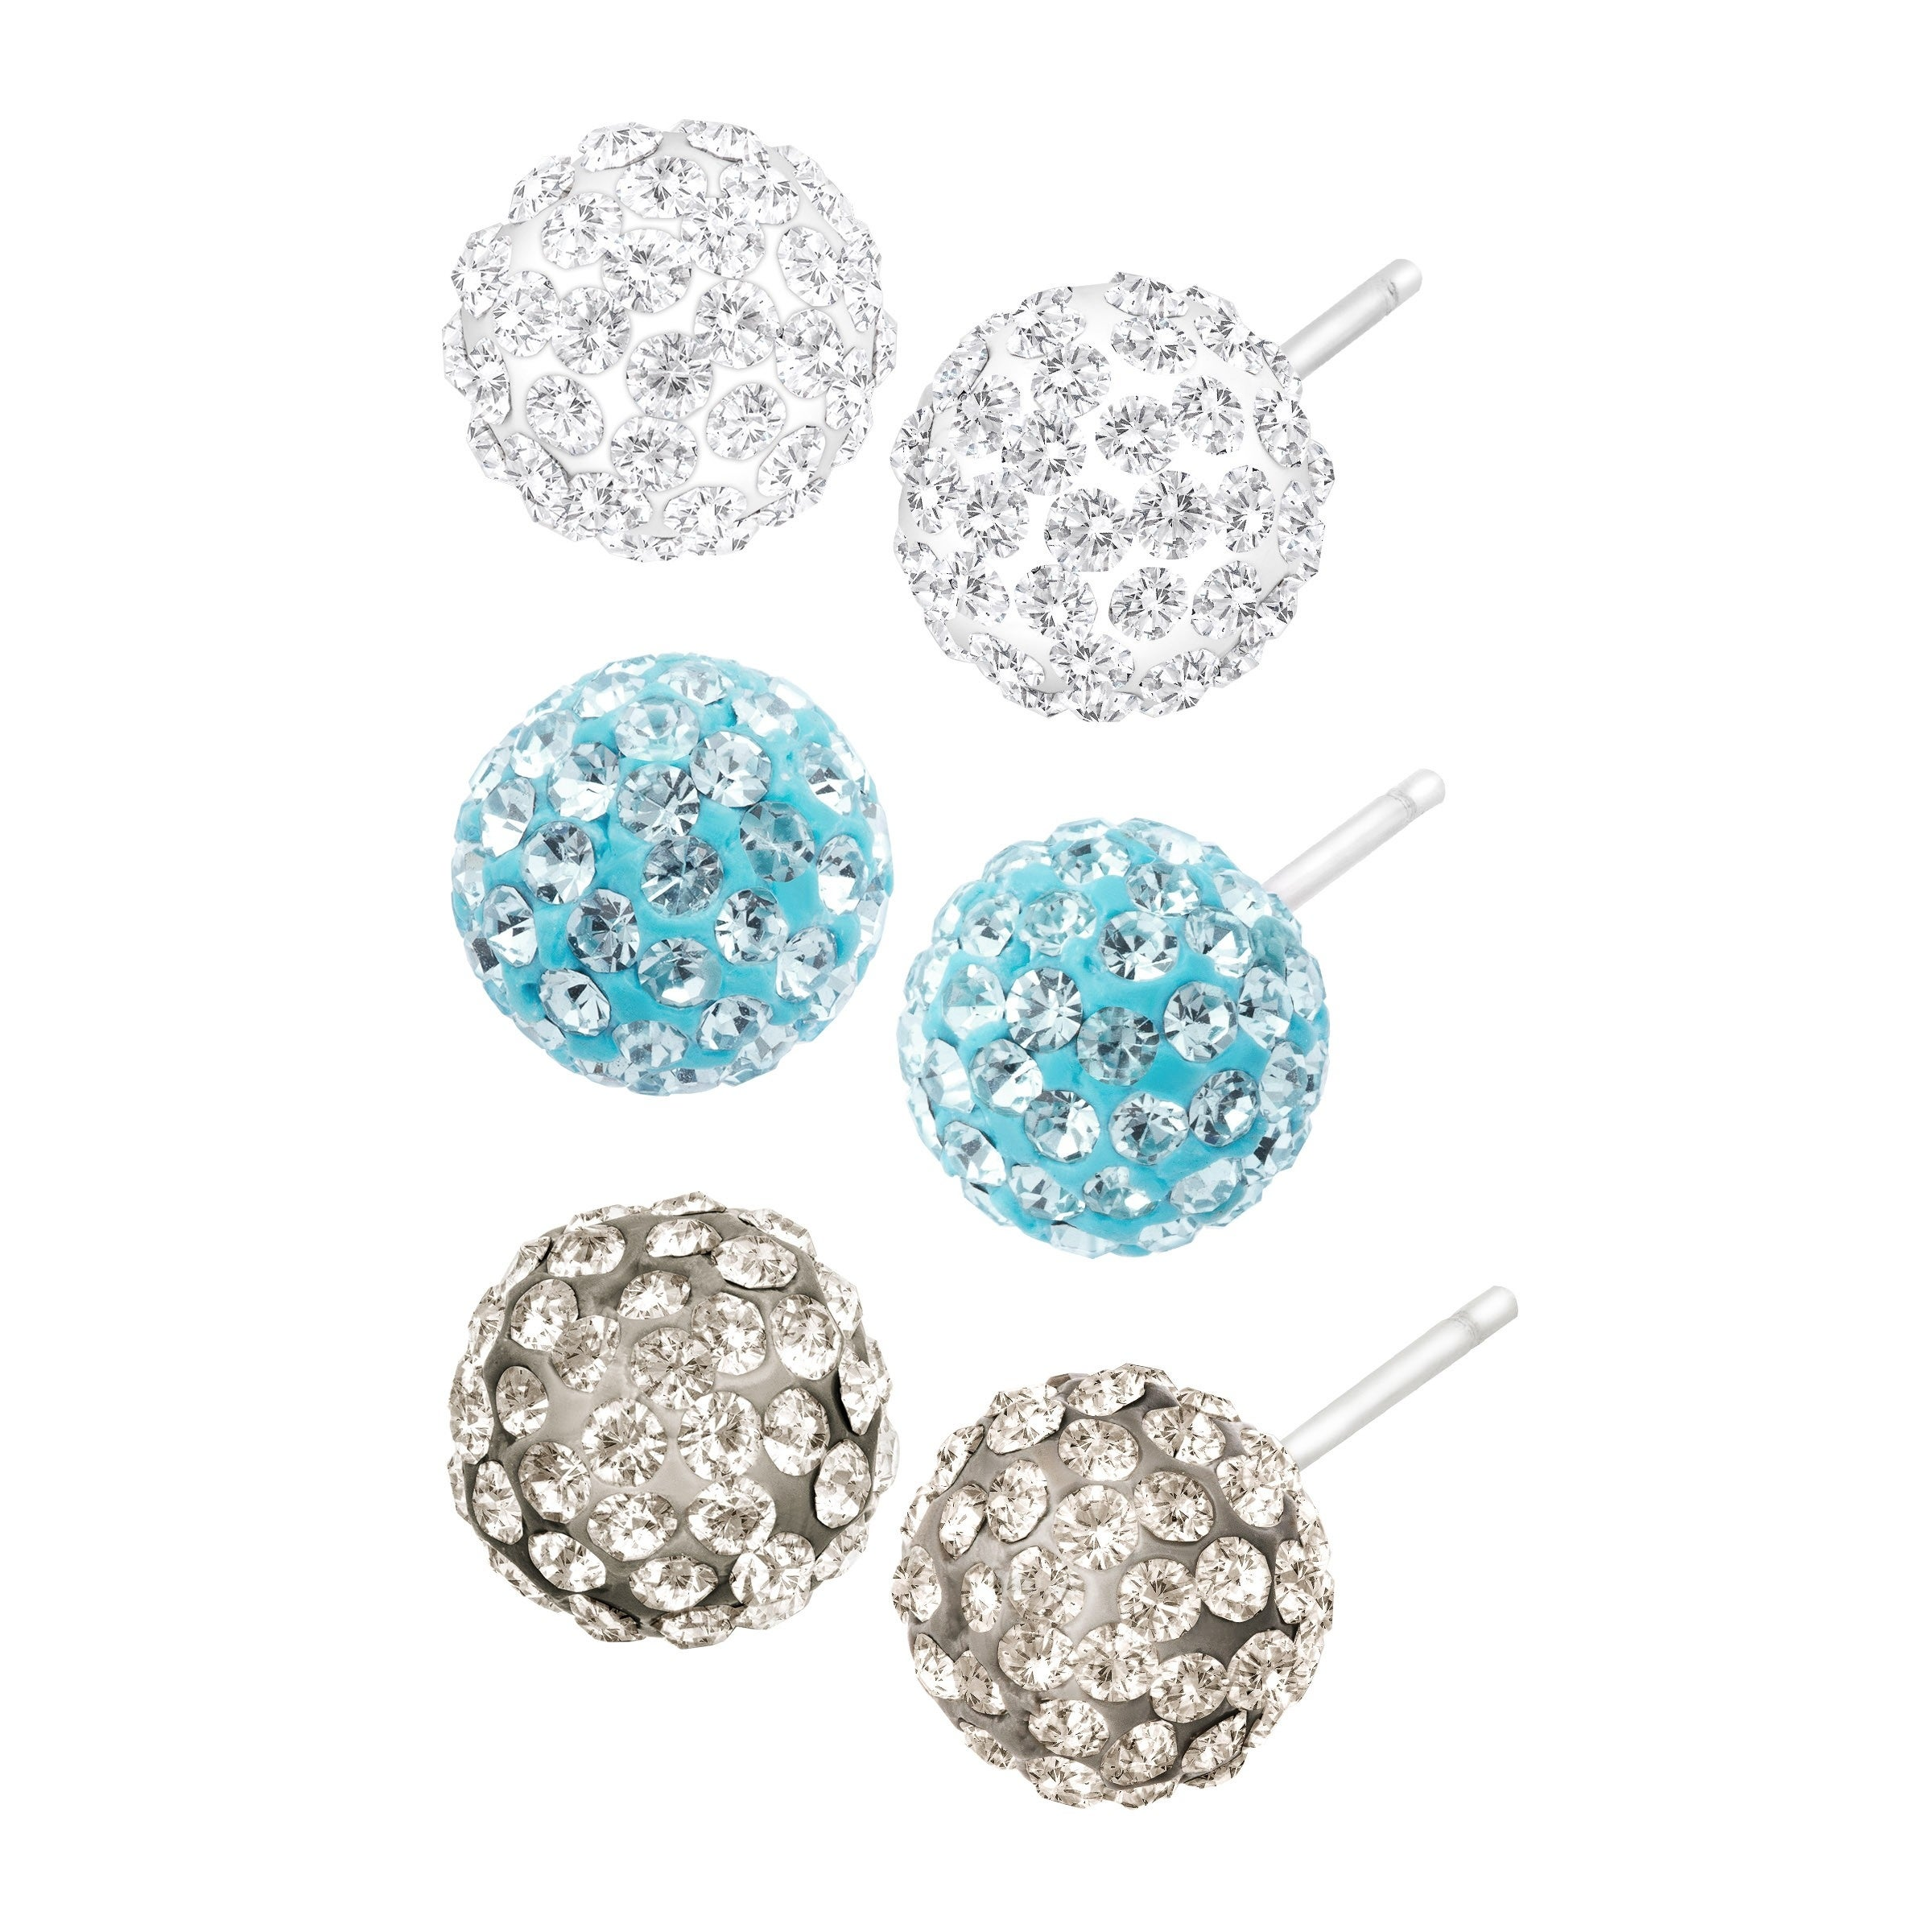 Crystaluxe Set Of 3 Ball Stud Earrings With Swarovski Crystals In Sterling Silver Blue On Free Shipping Orders Over 45